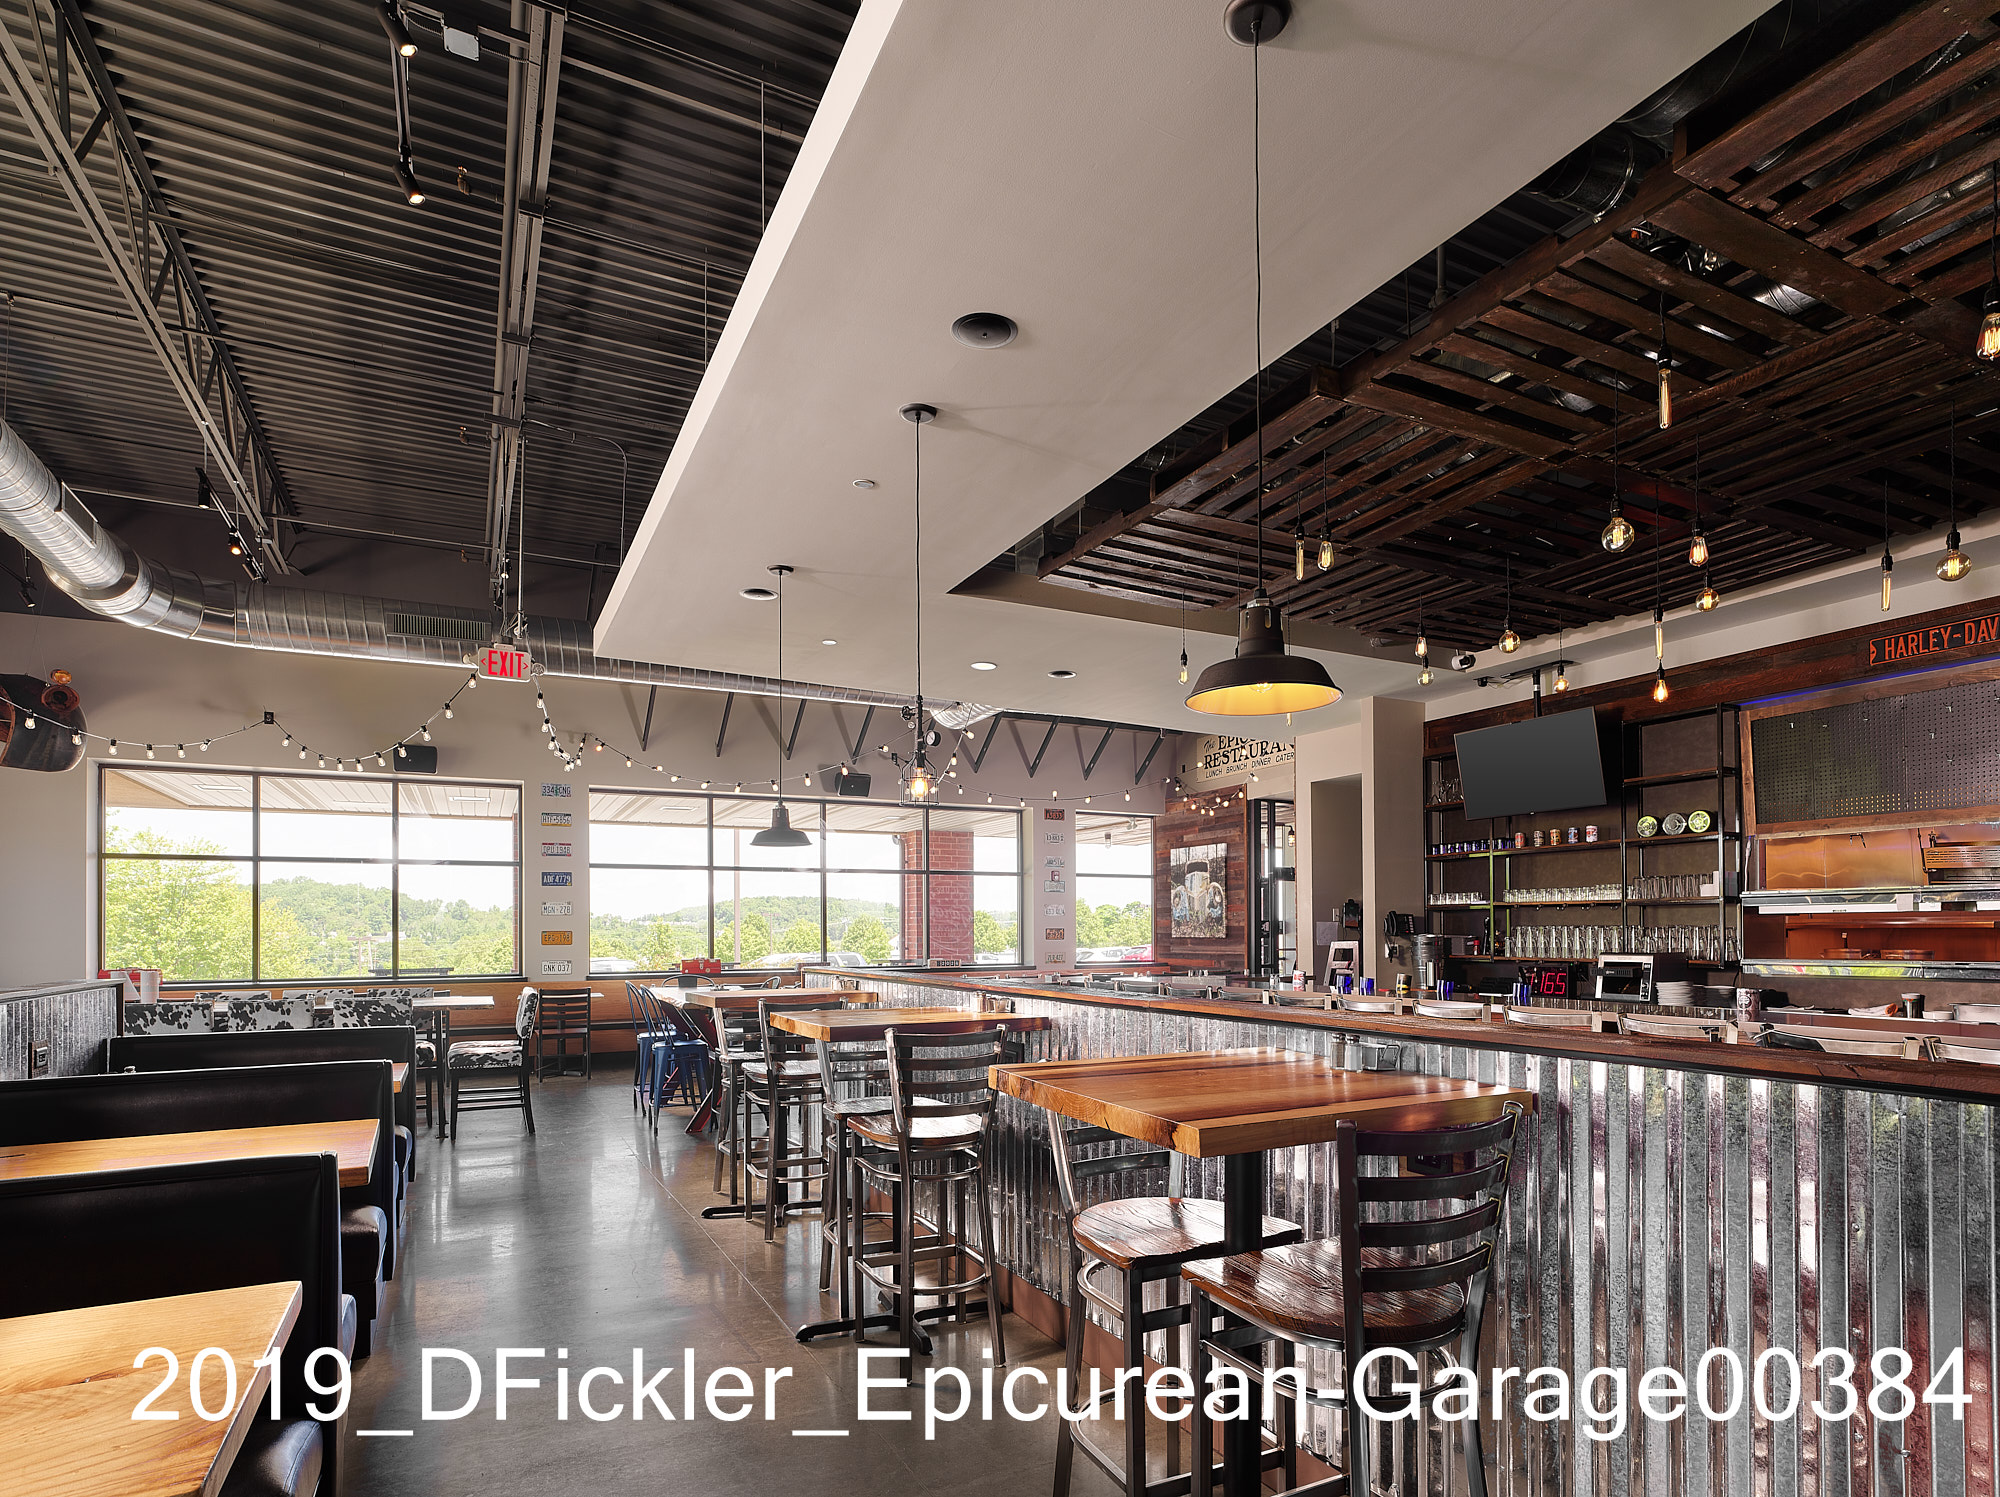 2019_DFickler_Epicurean-Garage00384.jpg